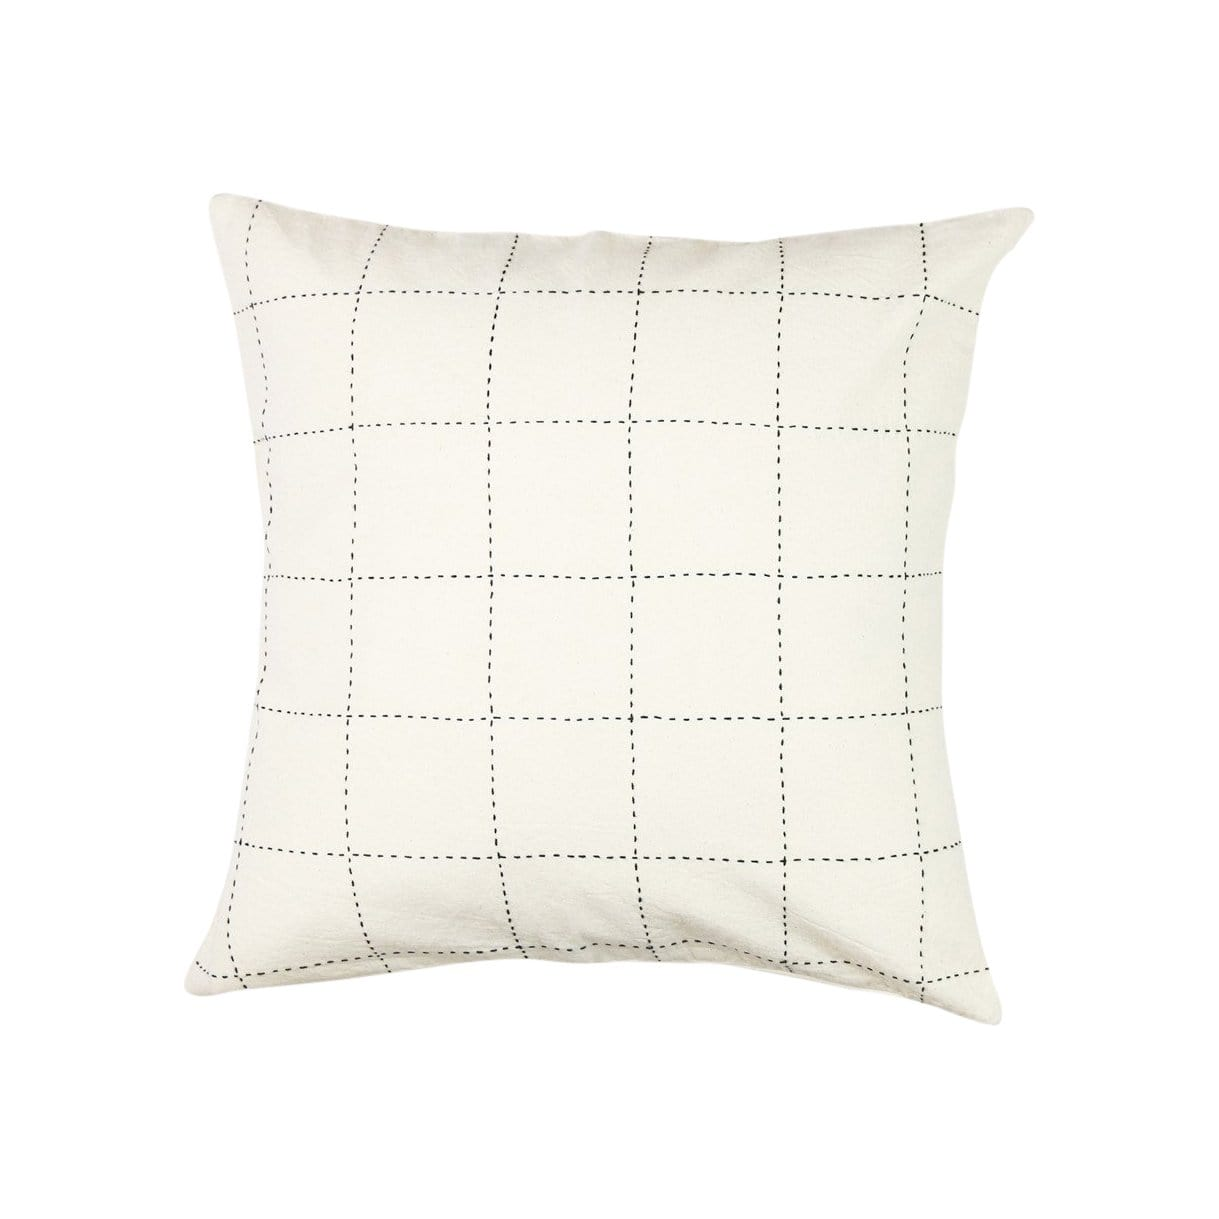 Anchal Project Cushions + Throws Medium Grid-Stitch Throw Pillow